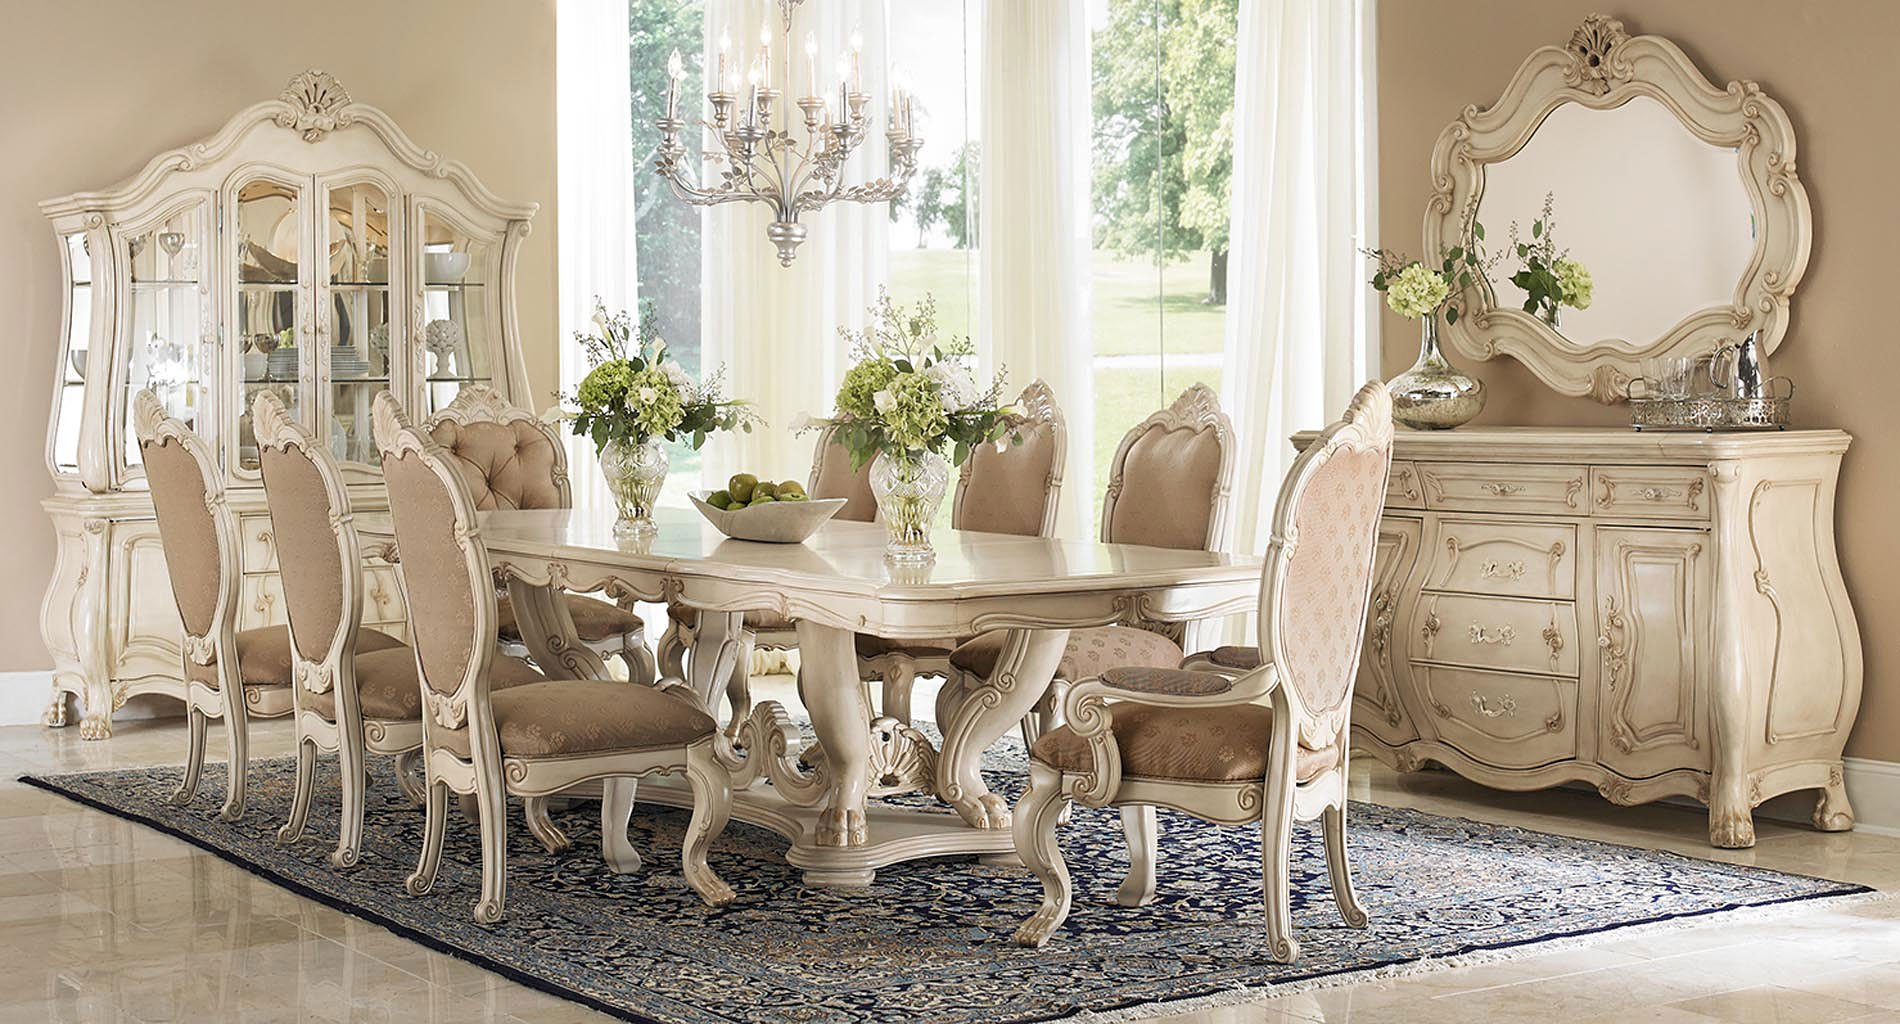 Chateau de lago dining room set aico furniture furniture for Lago furniture